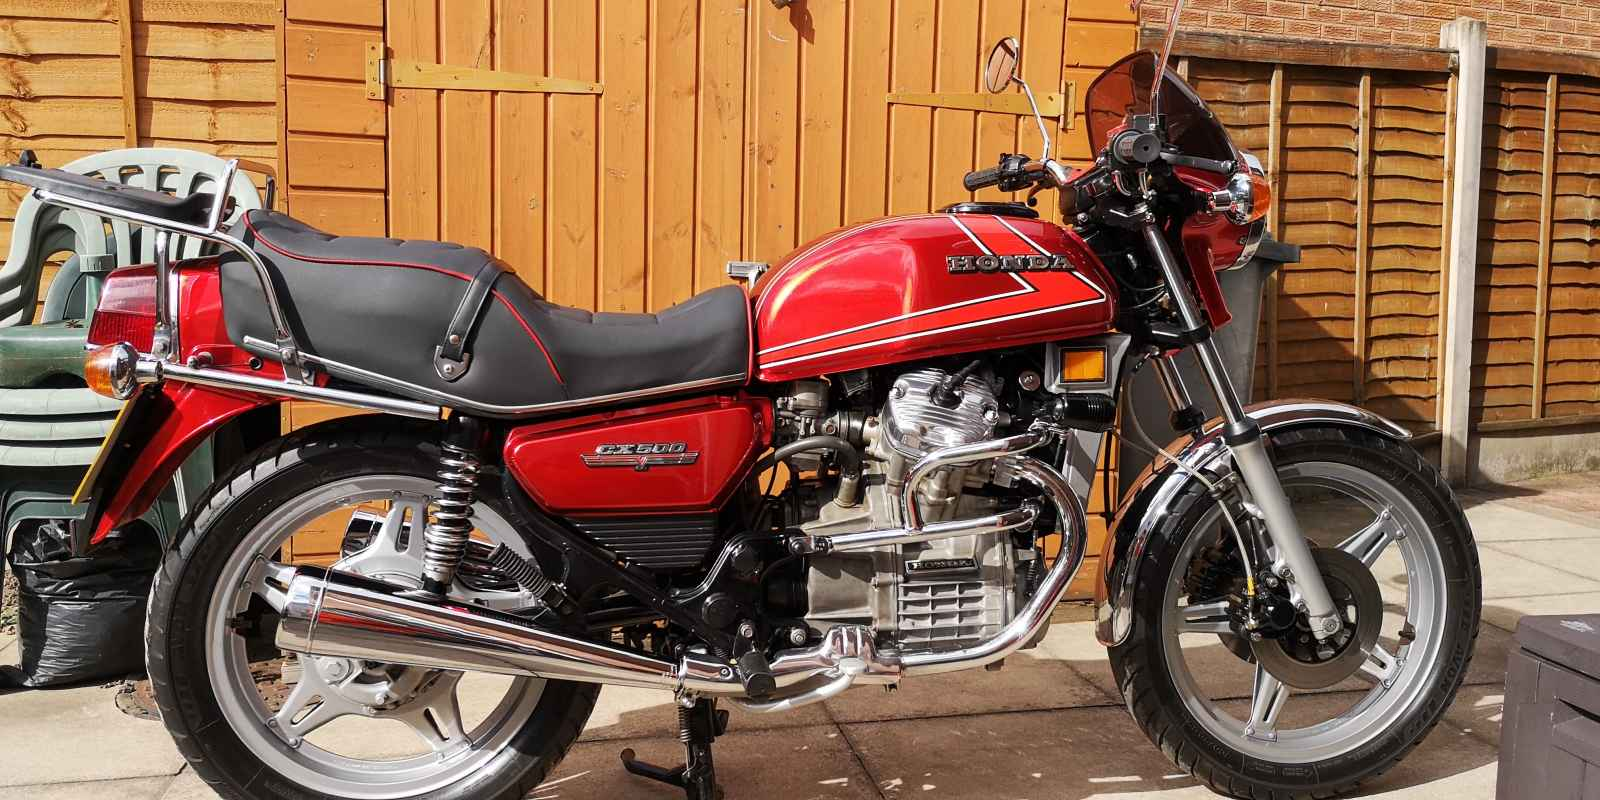 Geoff's CX500A now fitted with standard bars